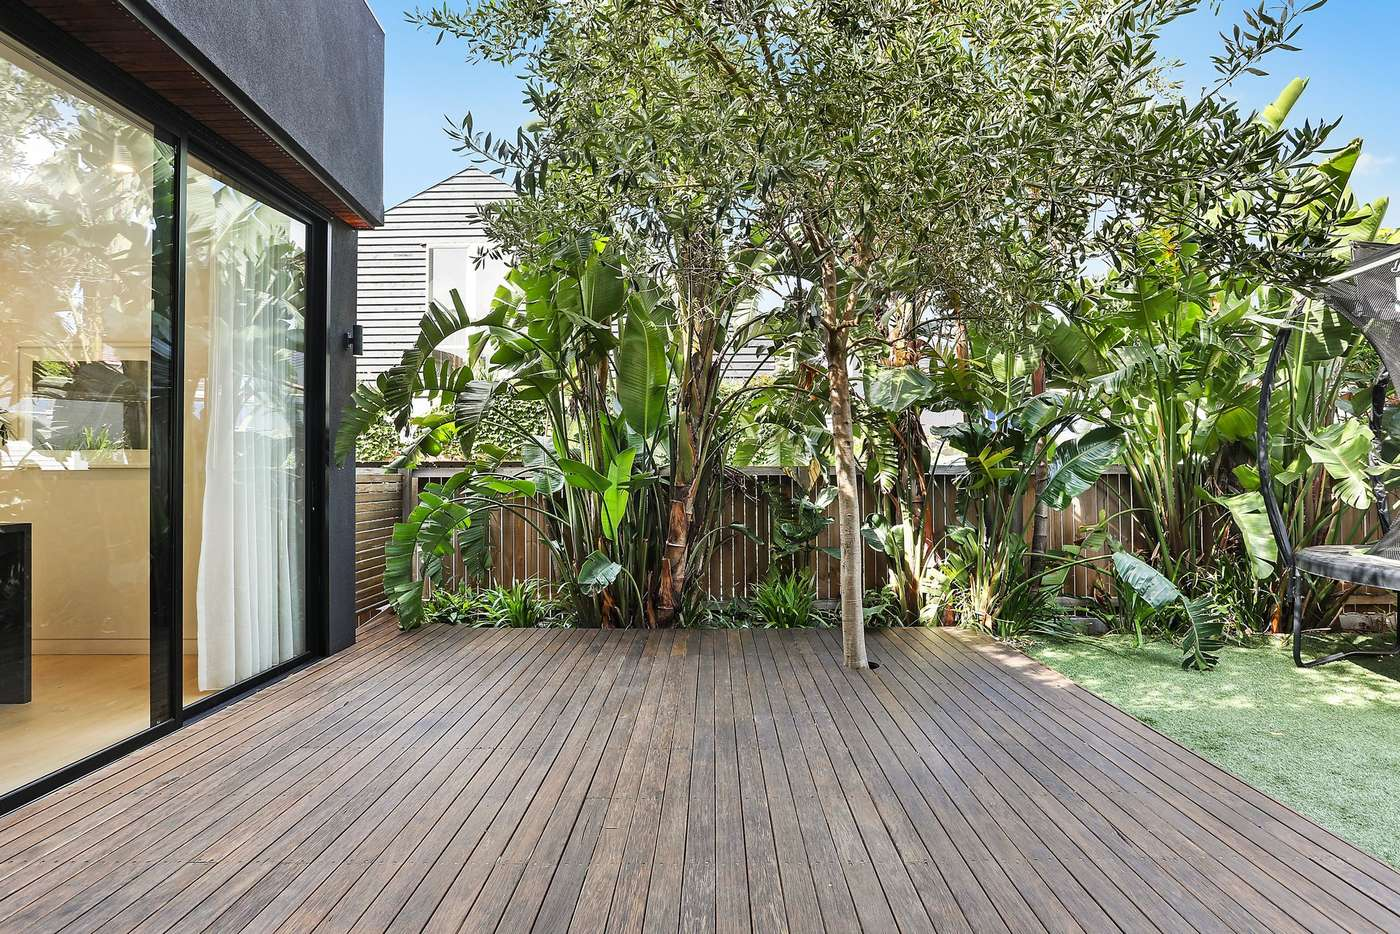 Fifth view of Homely house listing, 77 Beach Road, Bondi Beach NSW 2026